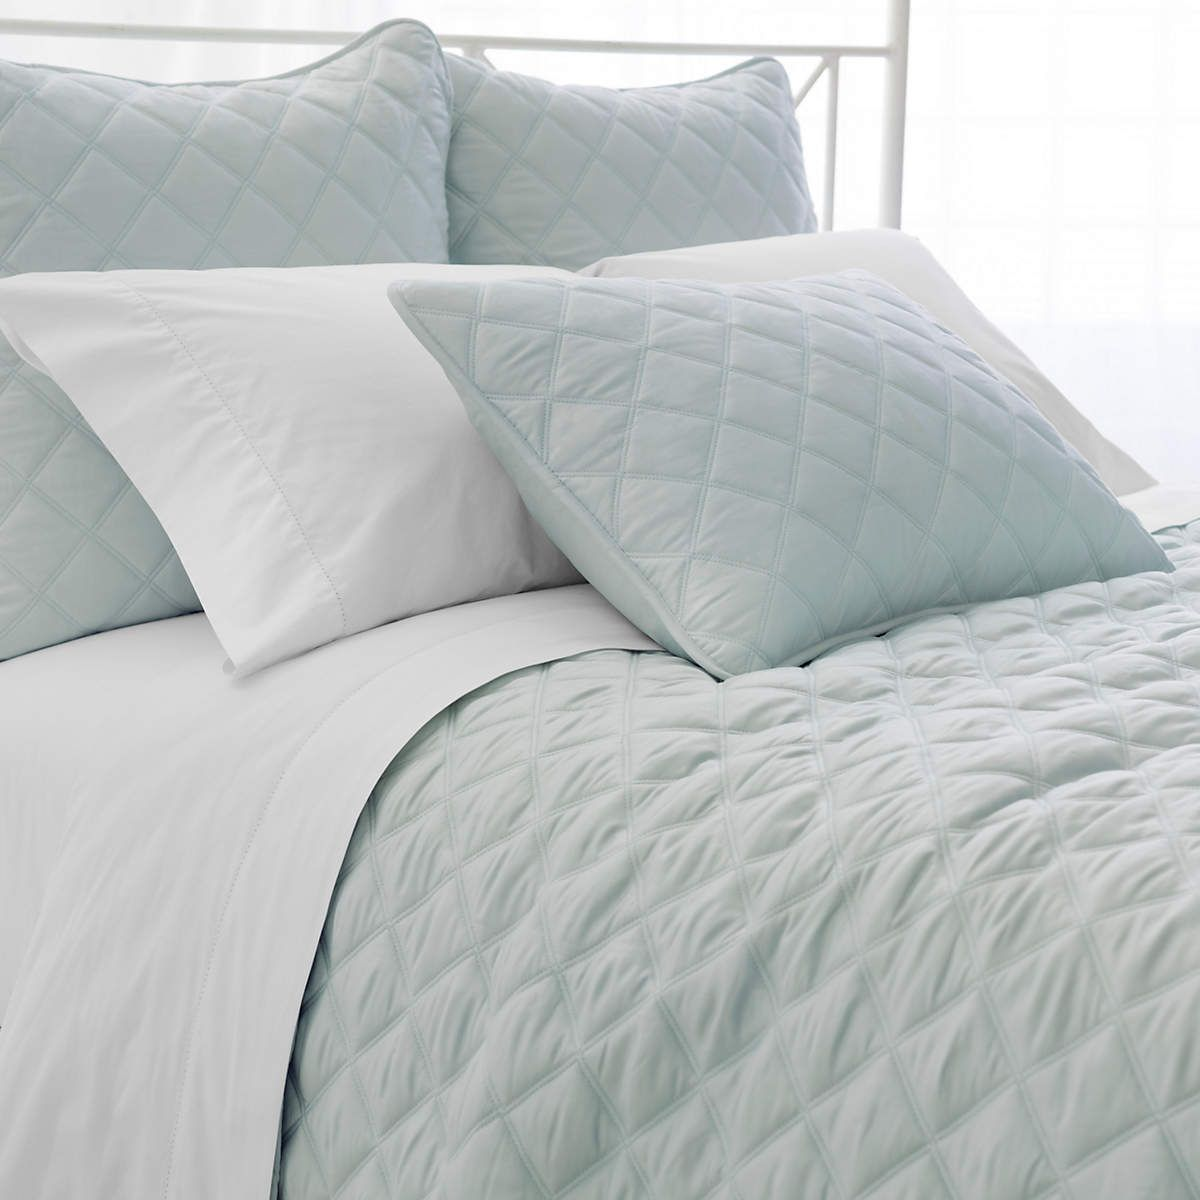 Quilted Silken Solid Robin S Egg Blue Coverlet Pine Cone Hill Bed Design Blue Bedding Grey Bedding